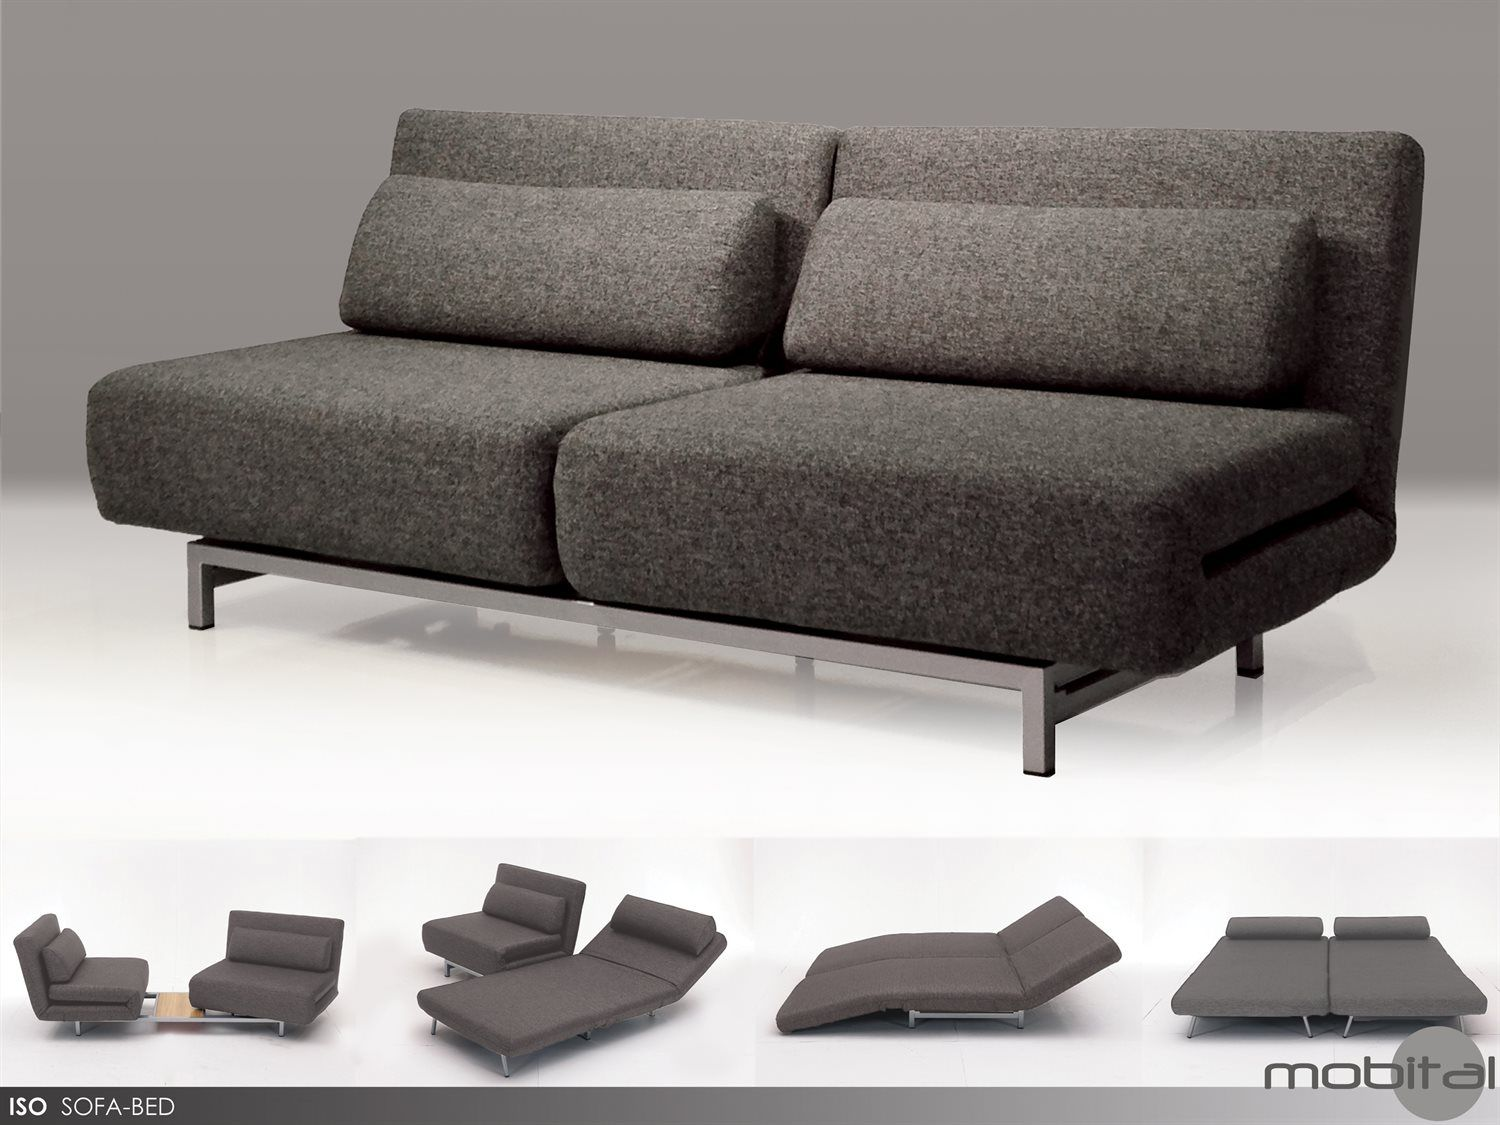 Luxury Home Decor Shopping For Indoor Outdoor Double Sofa Bed Modern Sofa Bed Sofa